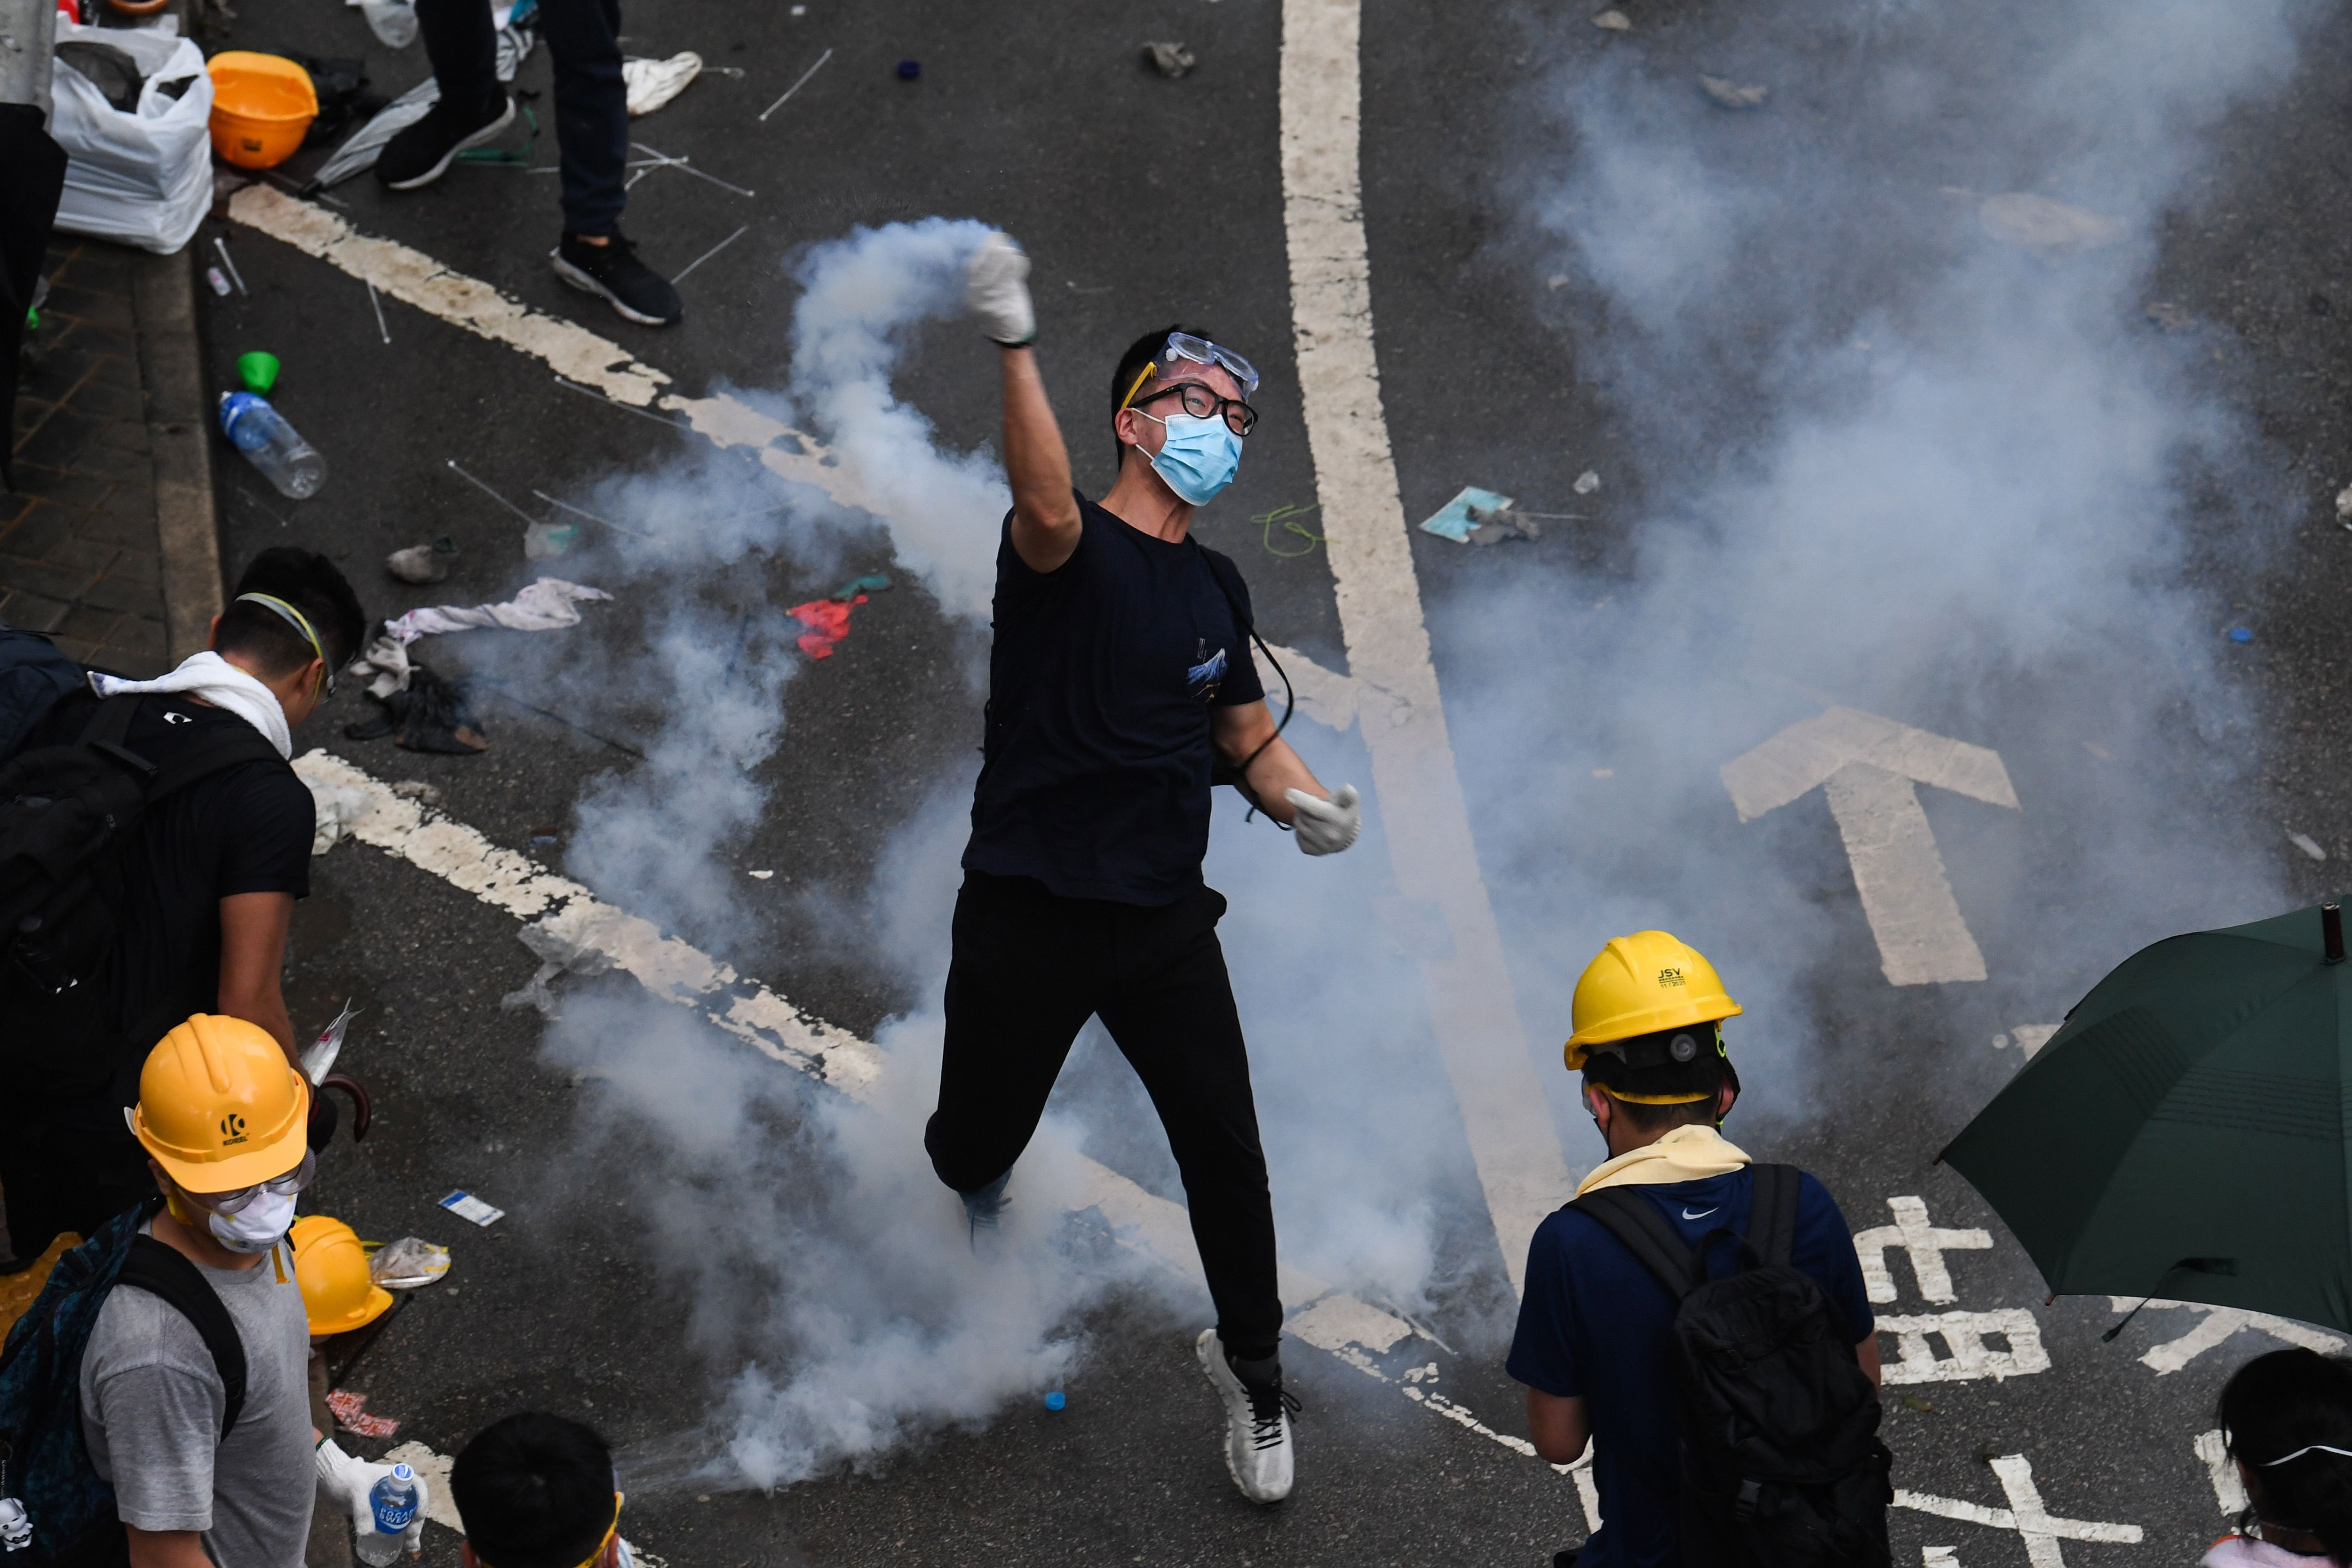 A protester throws back a tear gas during clashes with police outside the government headquarters in Hong Kong on June 12, 2019. - Violent clashes broke out in Hong Kong on June 12 as police tried to stop protesters storming the city's parliament, while t